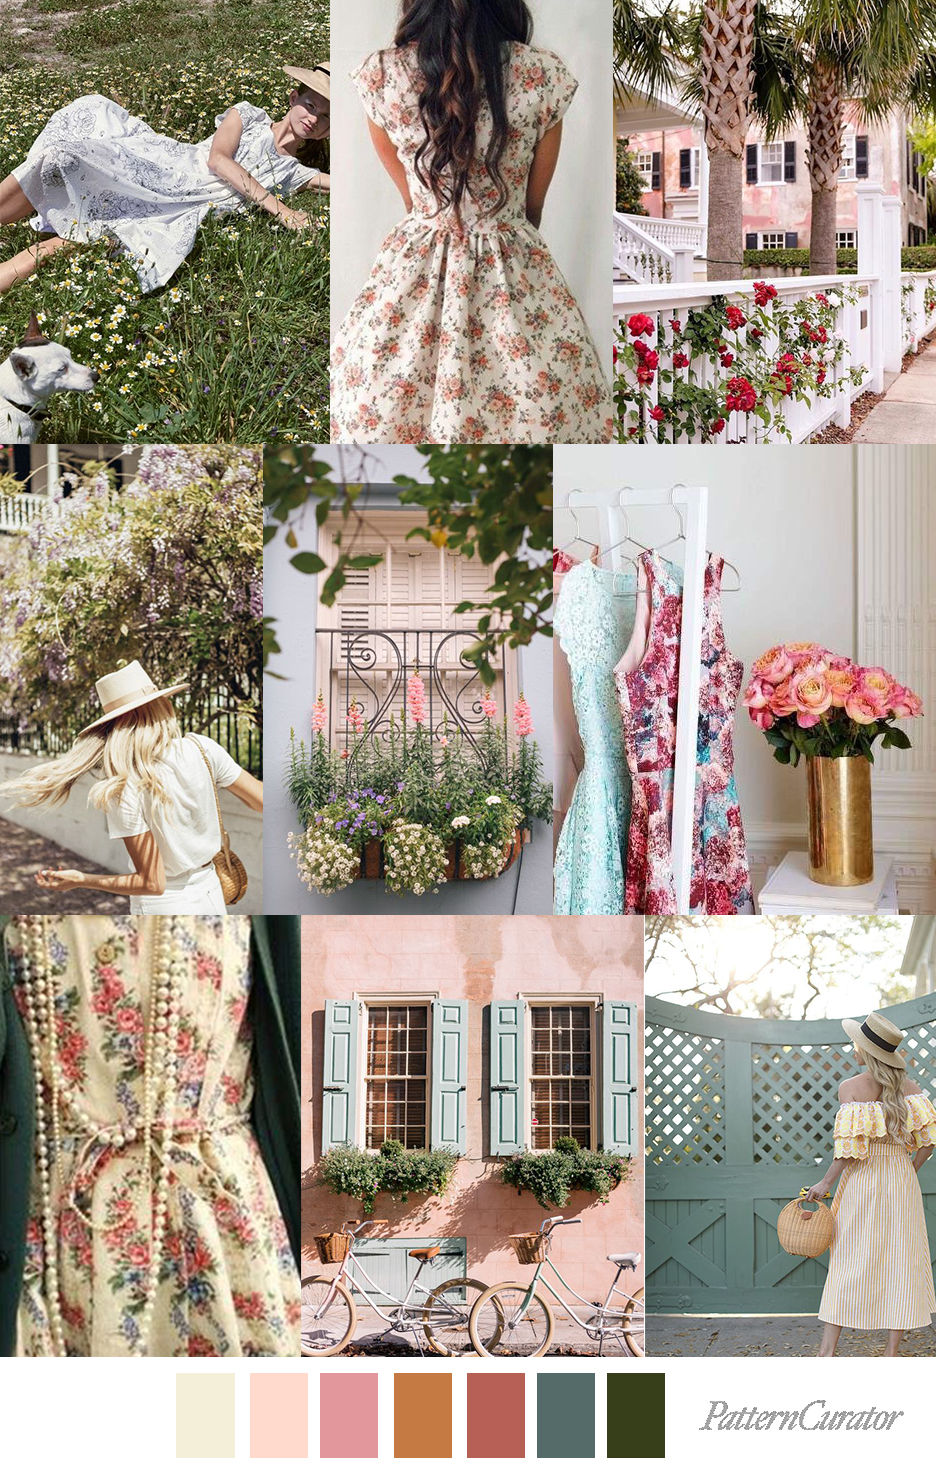 SOUTHERN-CHARM-SS20-SITE.jpg